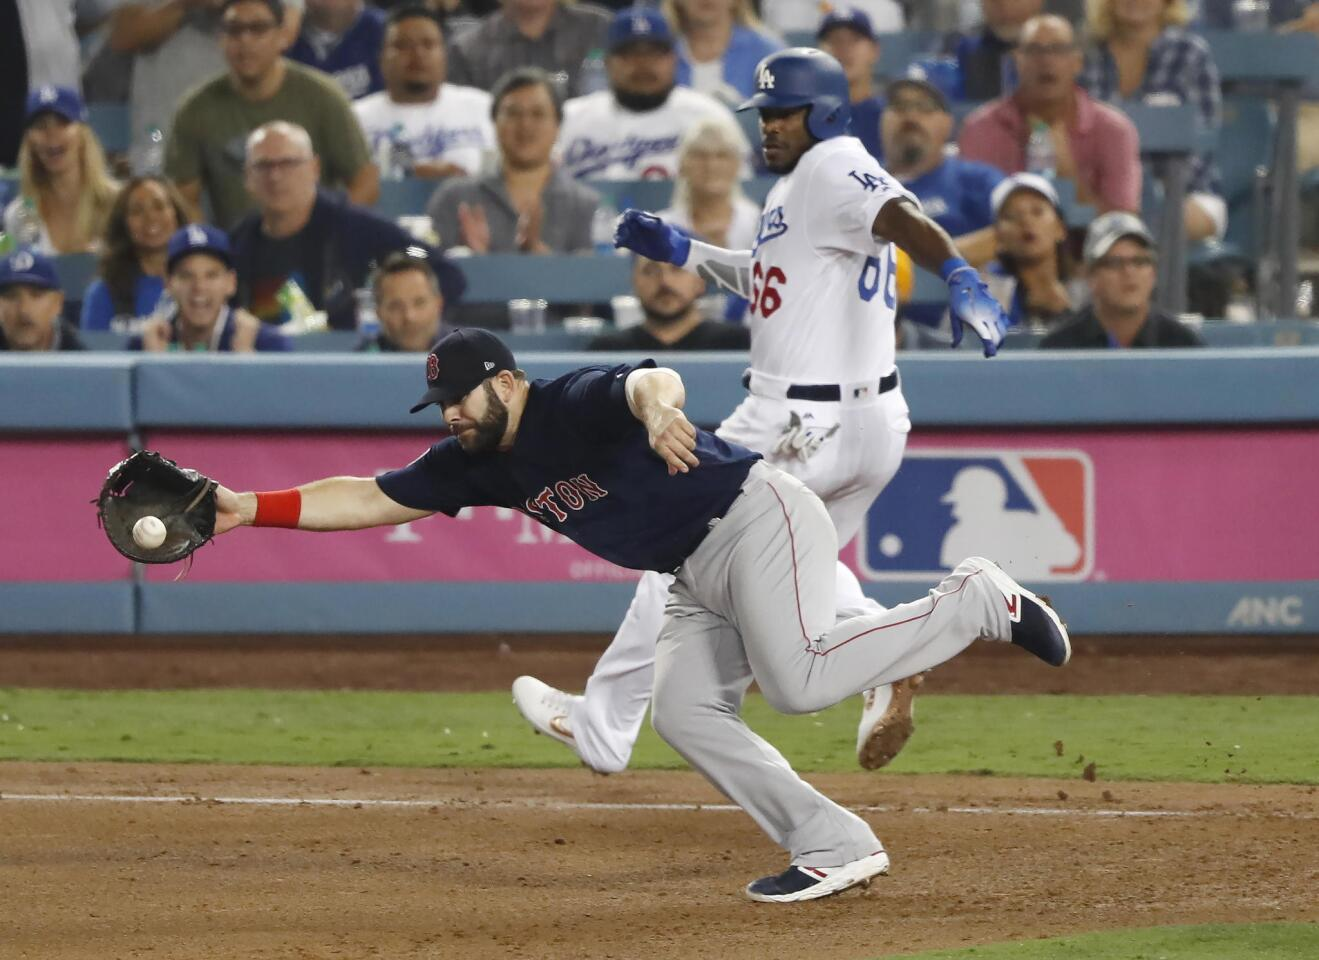 MCX01. Los Angeles (United States), 26/10/2018.- Boston Red Sox first baseman Mitch Moreland (L) comes off the bag to catch an errant throw on an infield single by Los Angeles Dodgers batter Yasiel Puig in the bottom of the seventh inning of game three of the World Series at Dodger Stadium in Los Angeles, California, USA, 26 October 2018. The Red Sox lead the best-of-seven series 2-0 to determine the champion of Major League Baseball. (Estados Unidos) EFE/EPA/JOHN G. MABANGLO ** Usable by HOY and SD Only **